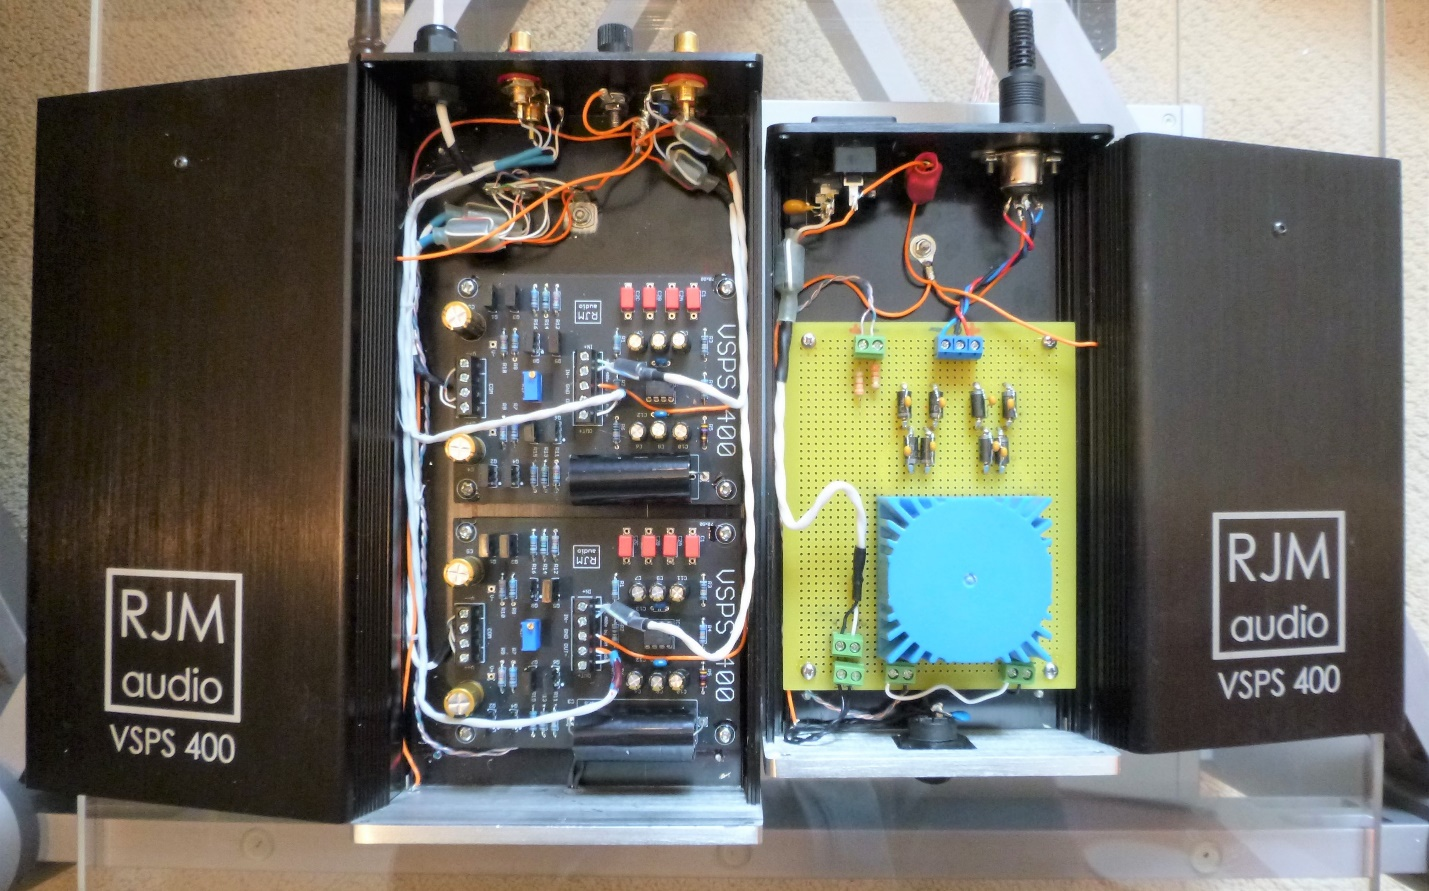 Review Rjm Audio Vsps 400 Phono Stage Wall Of Sound And Cartridge Wiring A